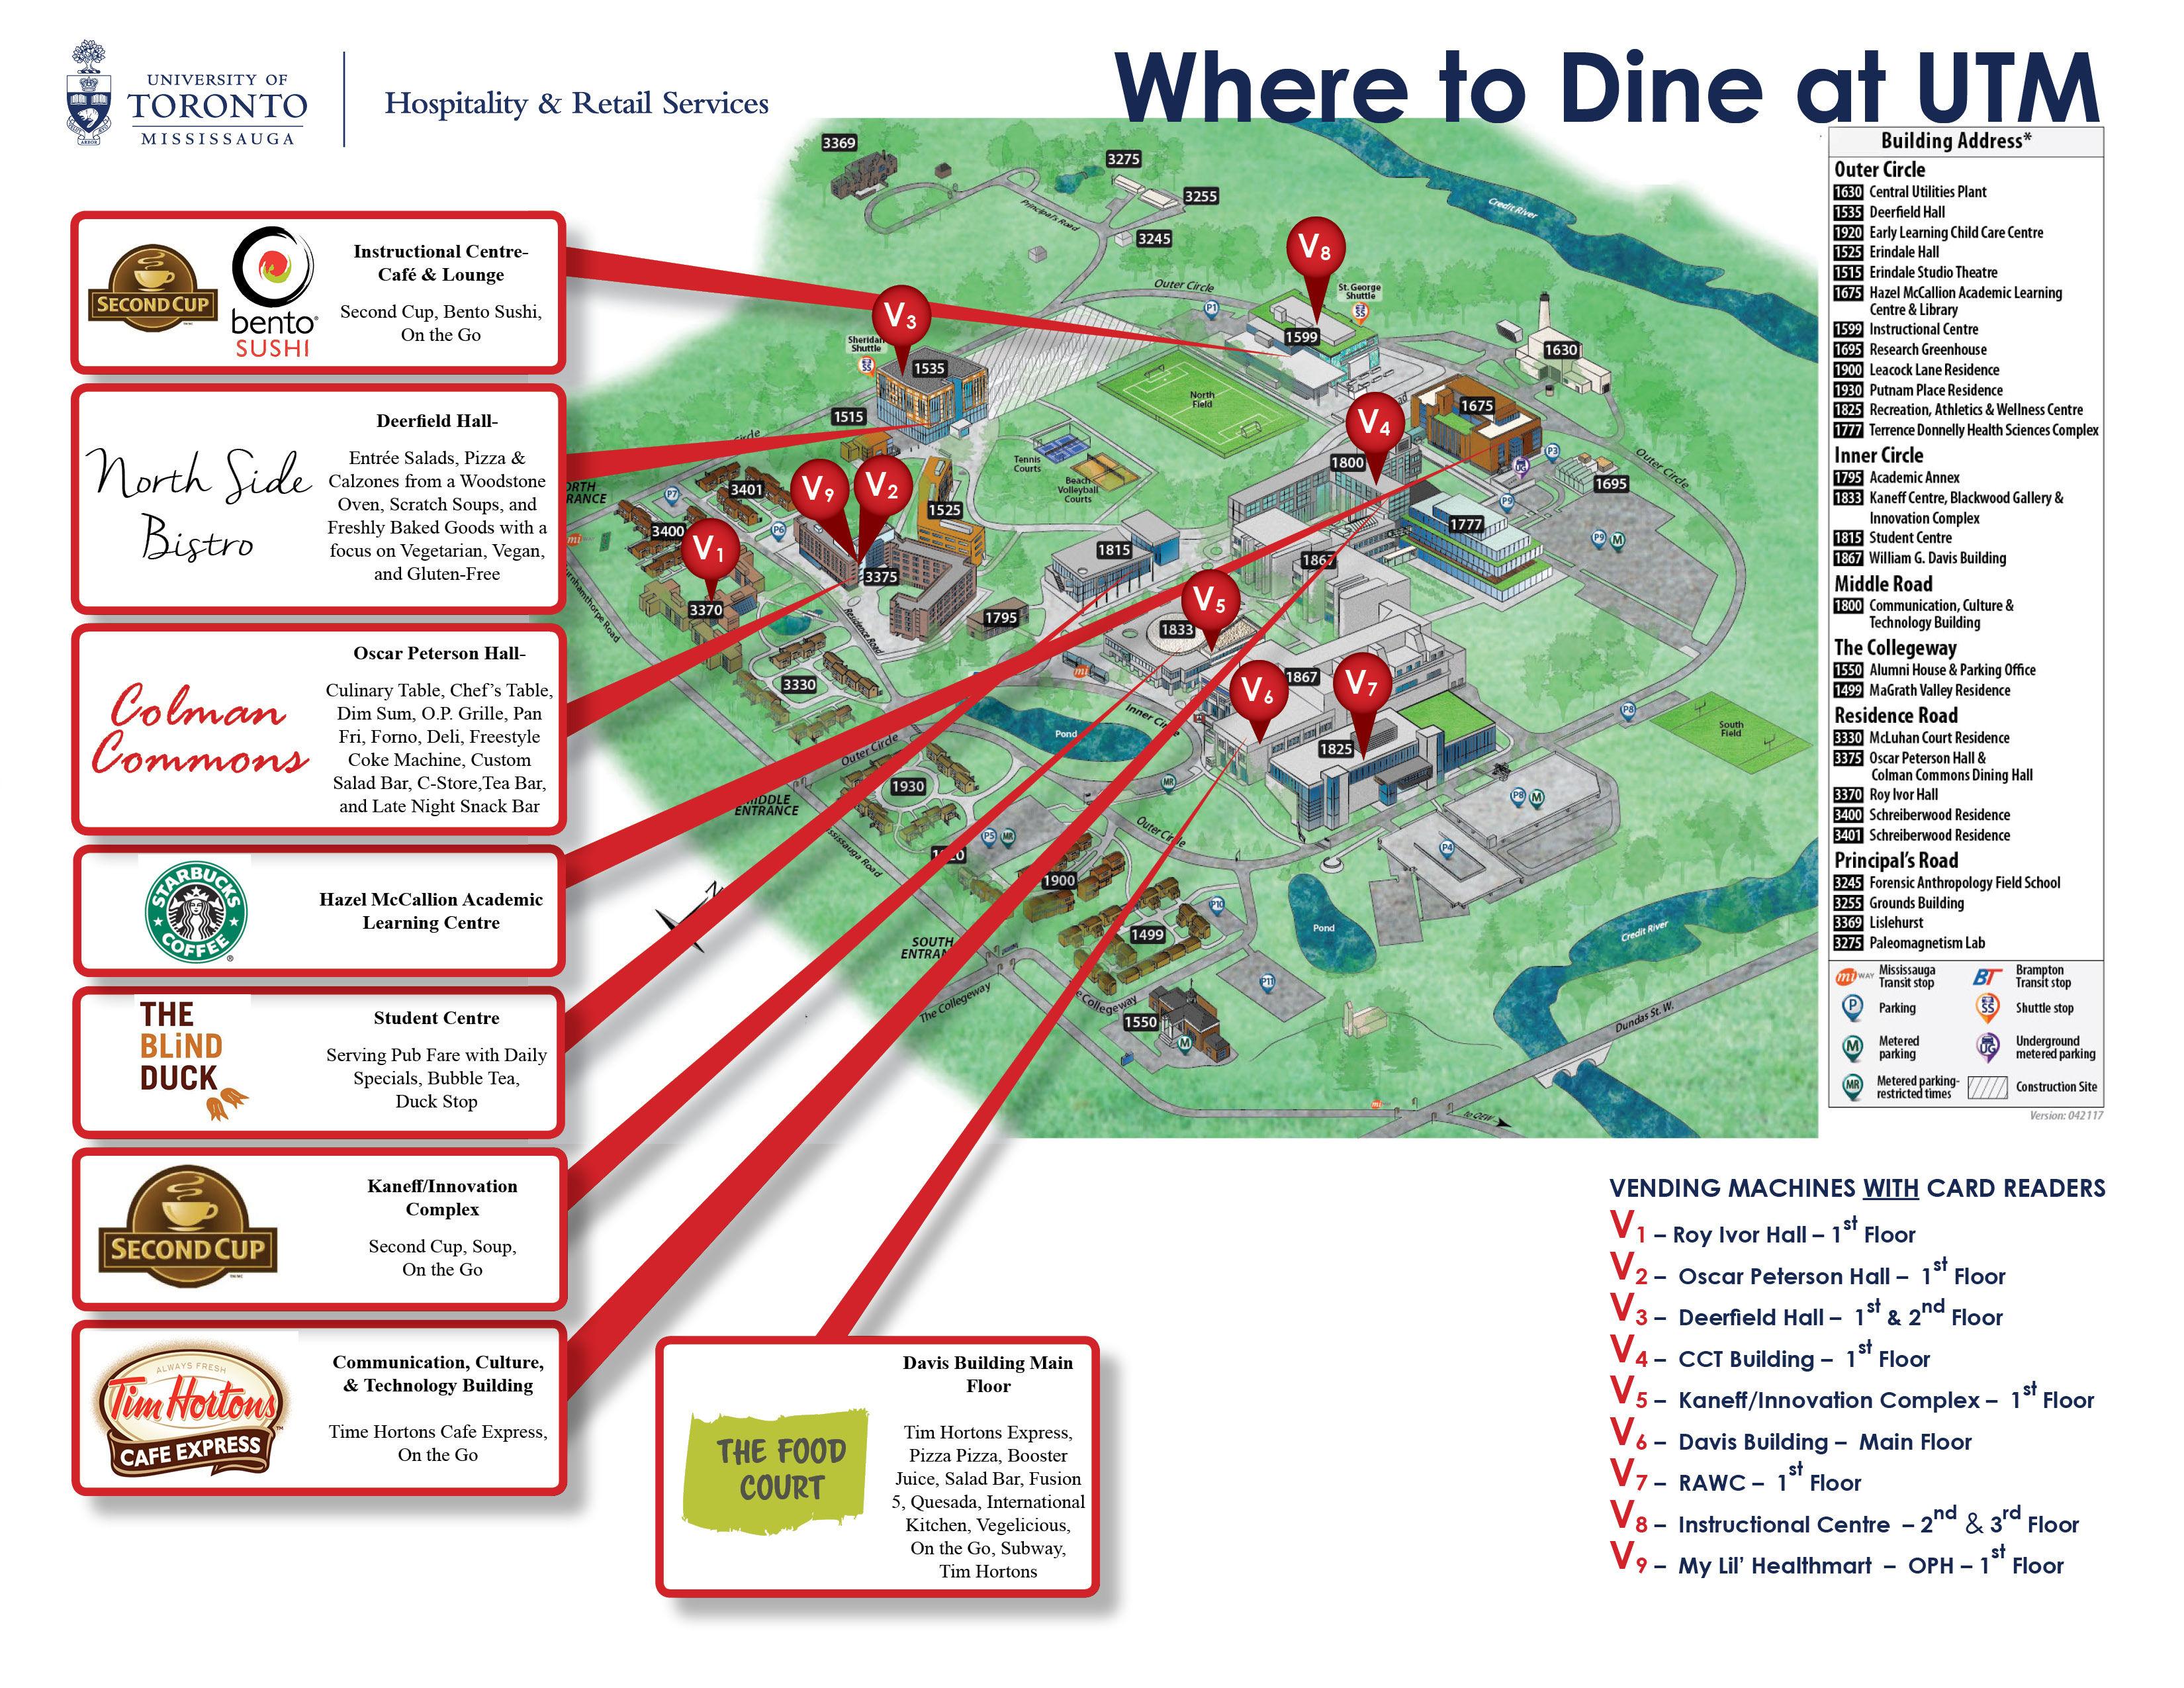 Where to Dine at UTM Campus